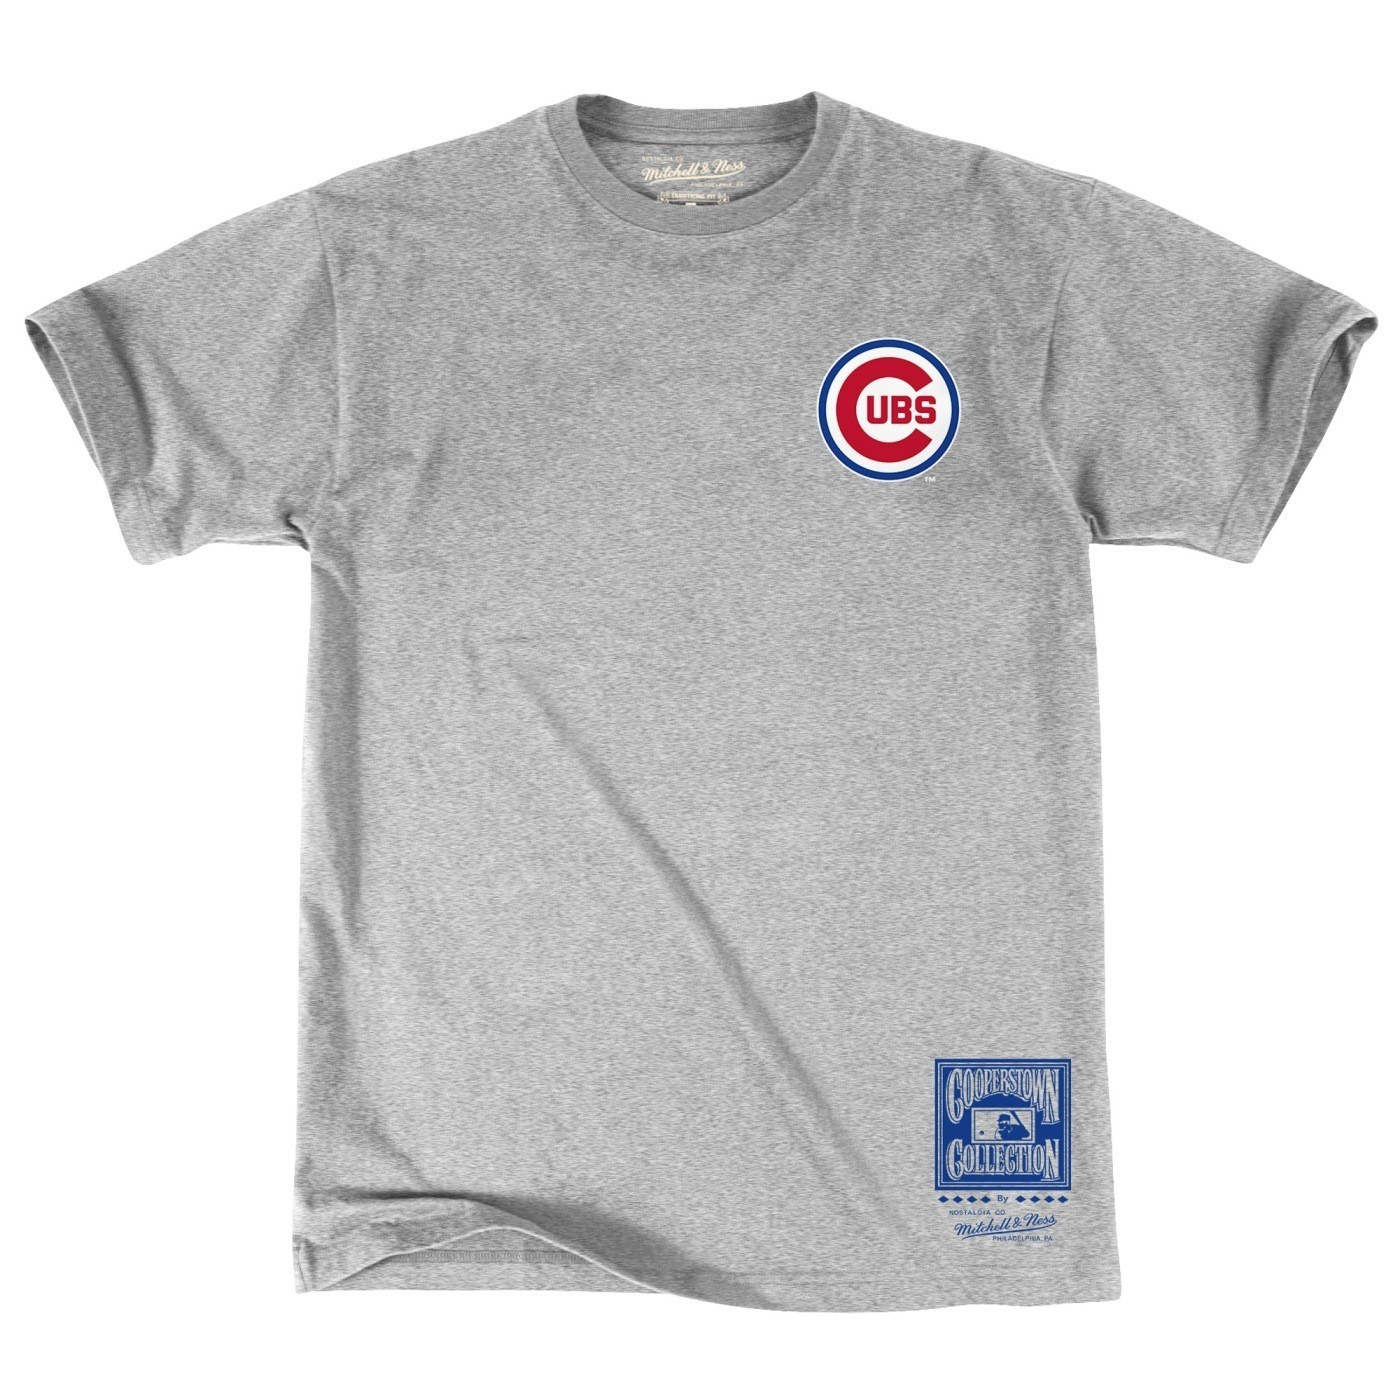 Chicago Cubs Logo Printed Short sleeve T-Shirt S-3XL NEW!!!!!!!